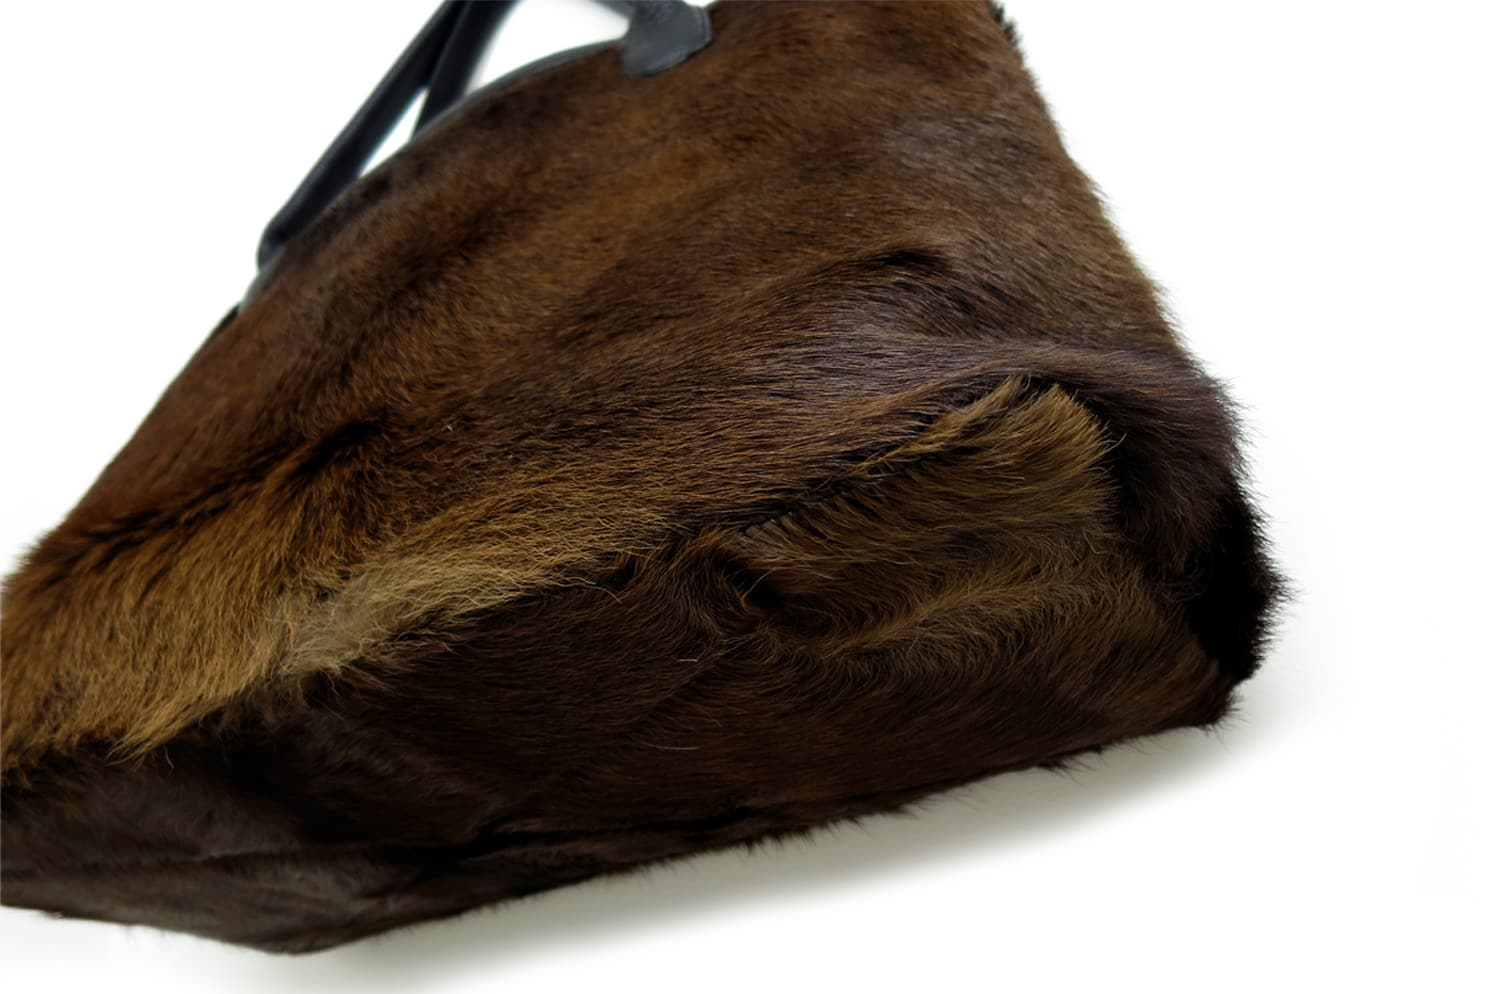 Hair on Cow Hide Tote Bag ハラコ 牛革 革 レザー トートバッグ No.03